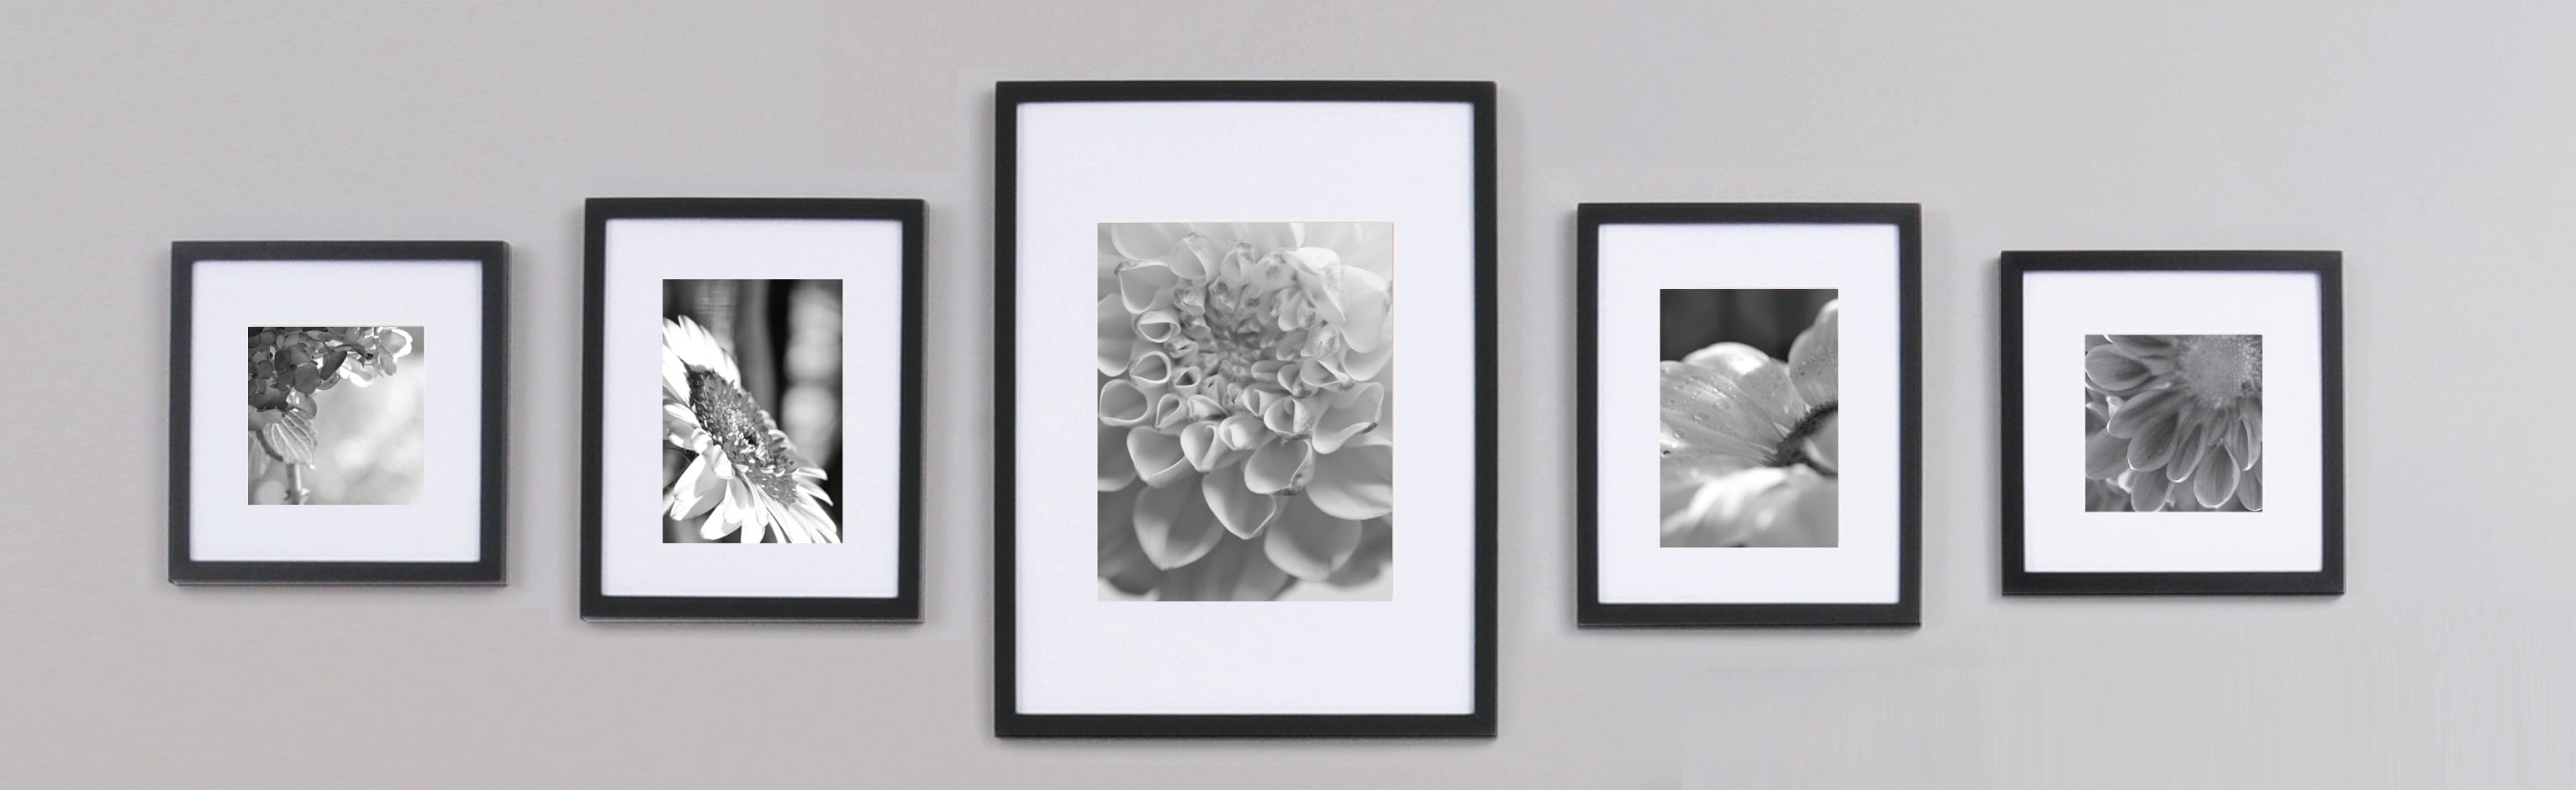 Gallery Perfect 5-Piece Black Wall Frame Kit - Walmart.com